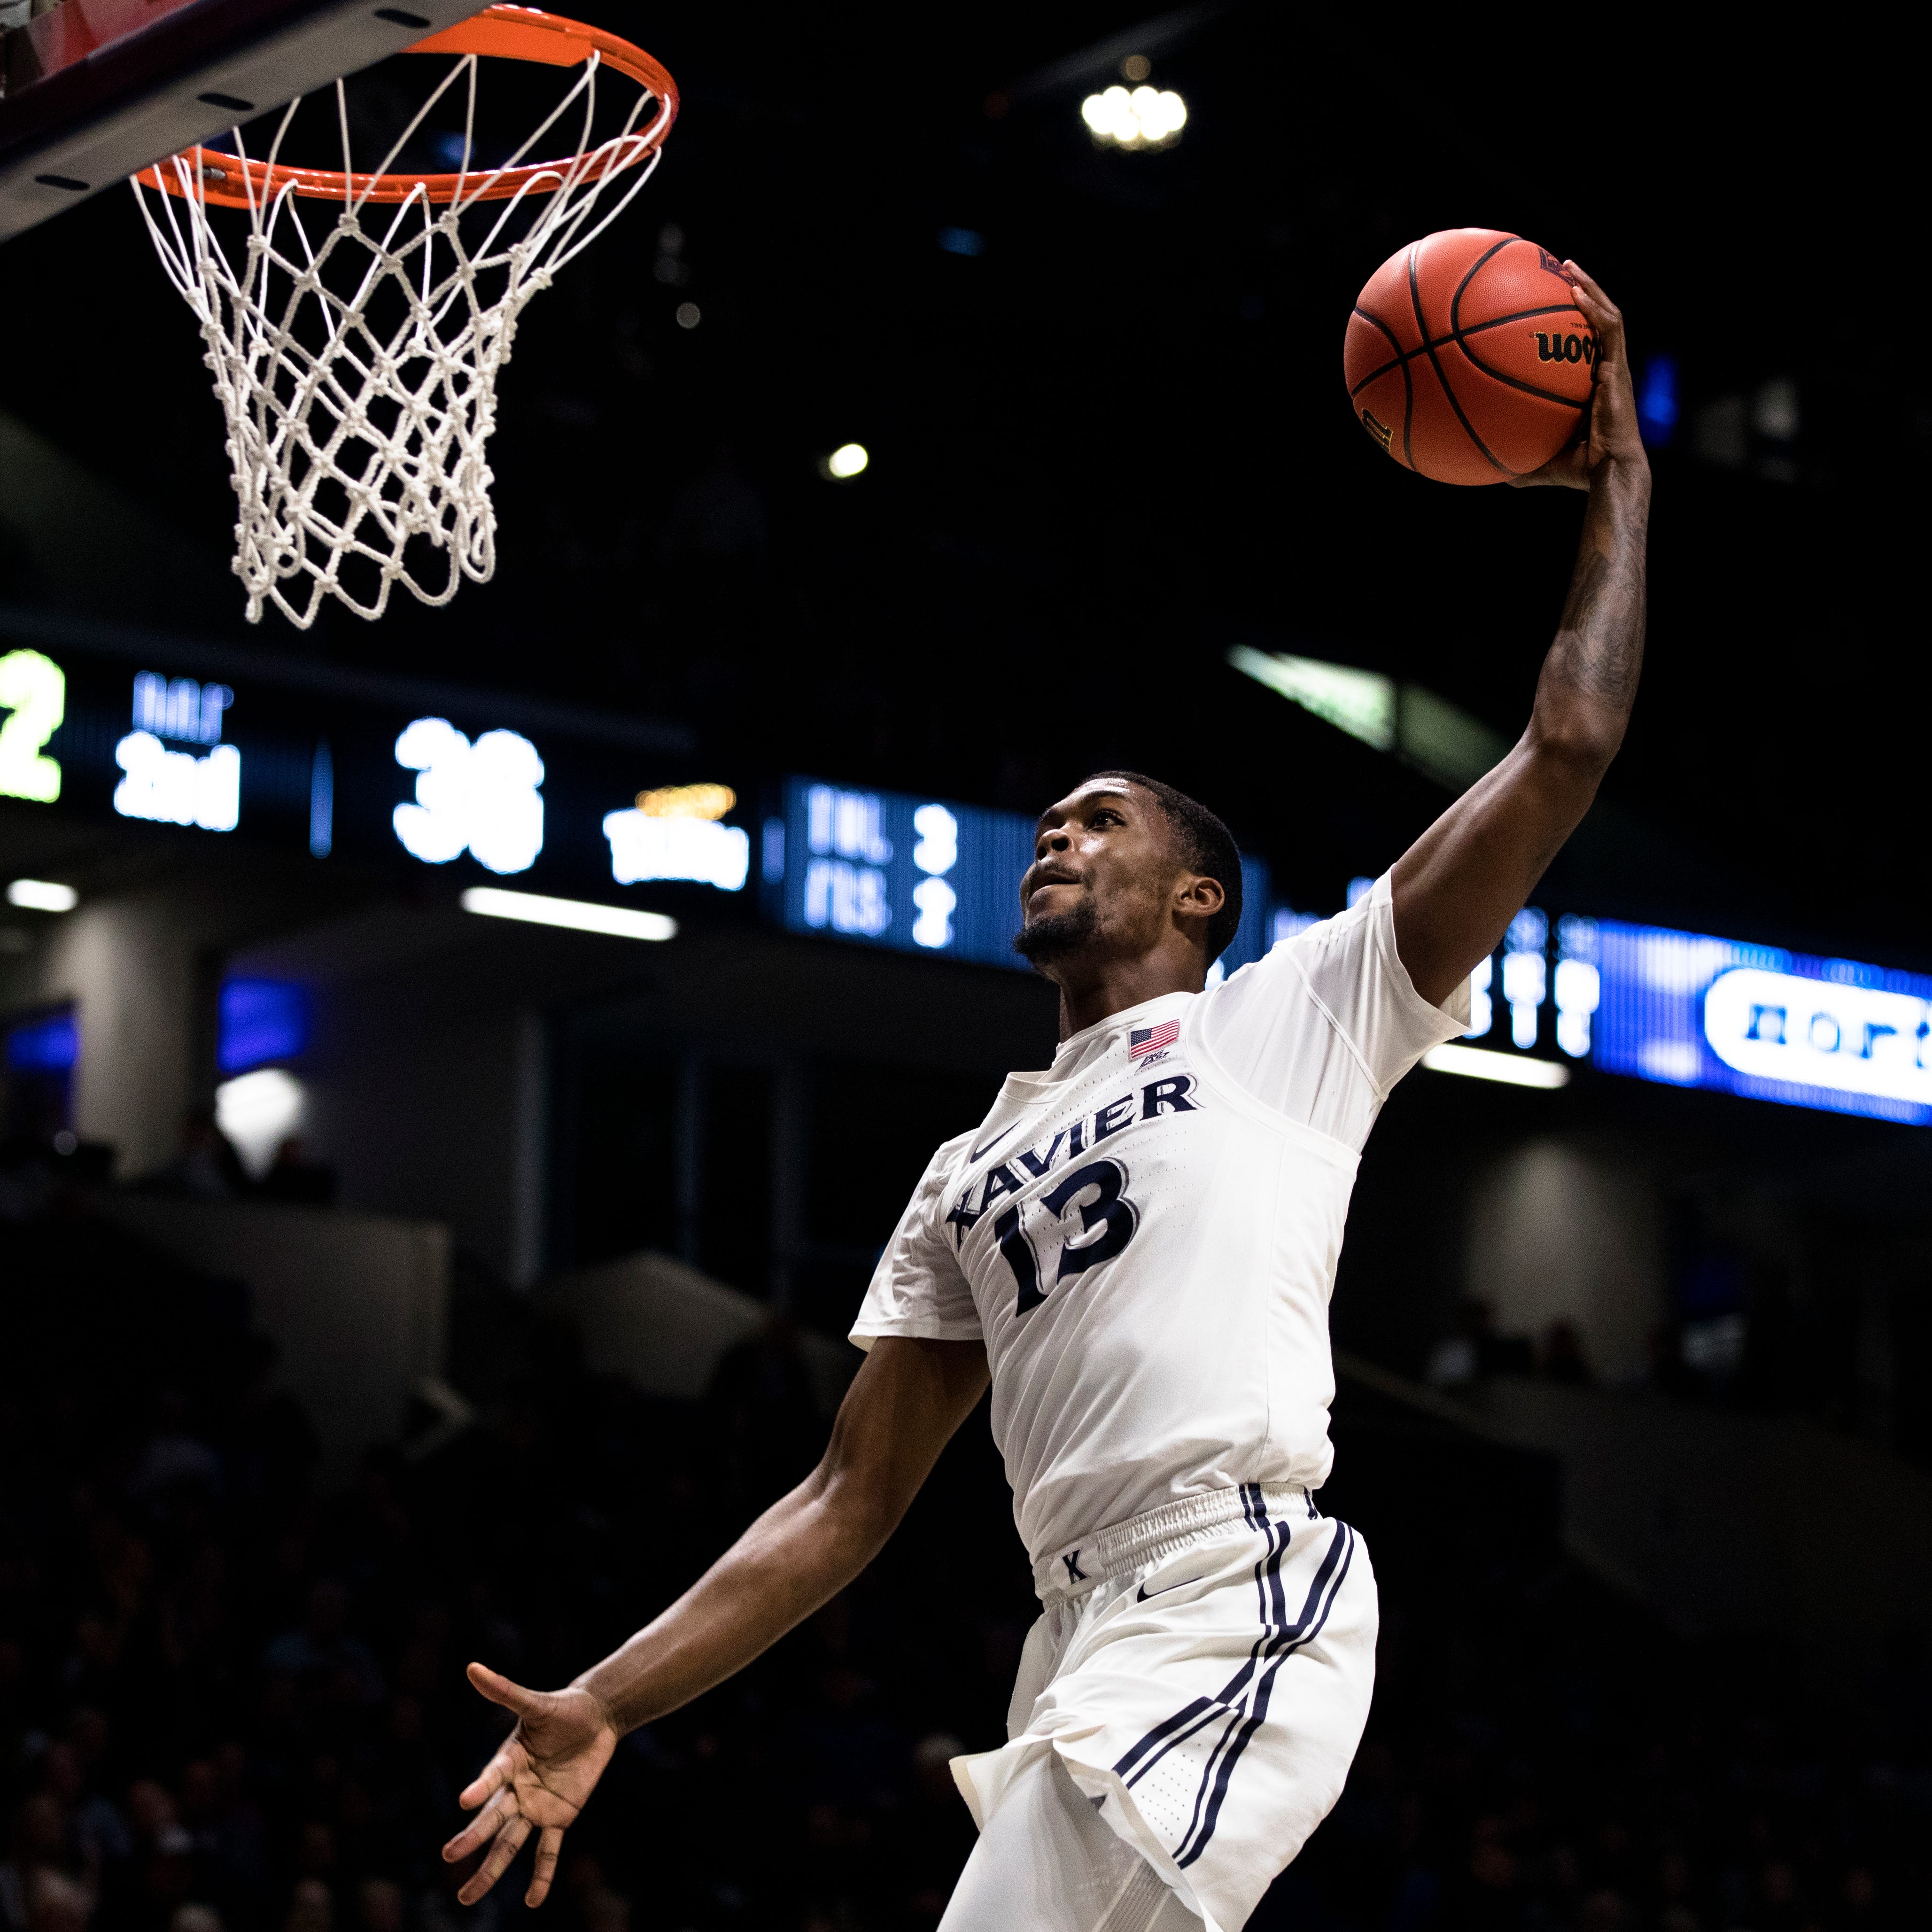 NIT Bracketology 2019: No. 3 Xavier blows by No. 6 Toledo in the first round